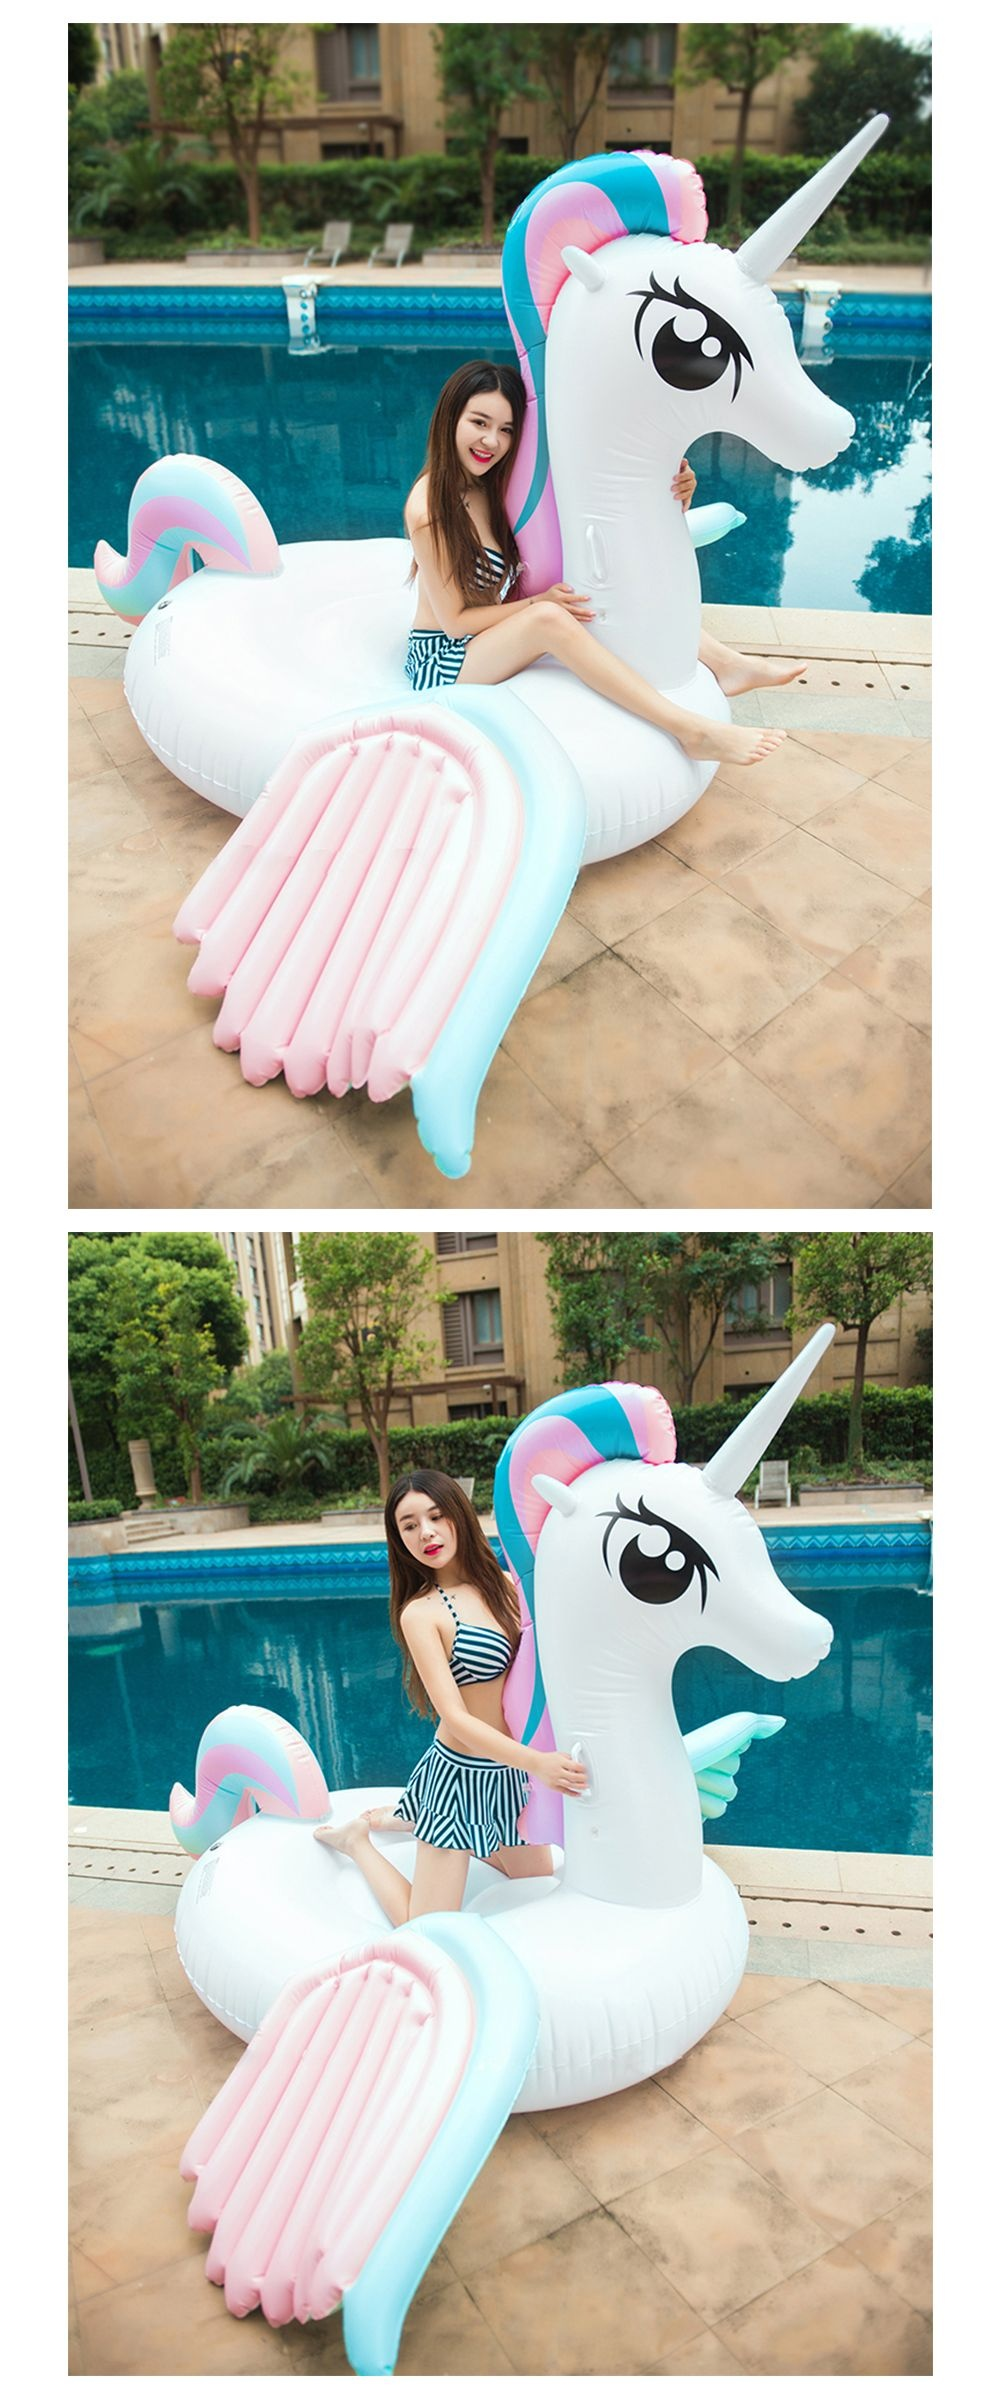 Giant Inflatable Unicorn A Magical Pool Lounger